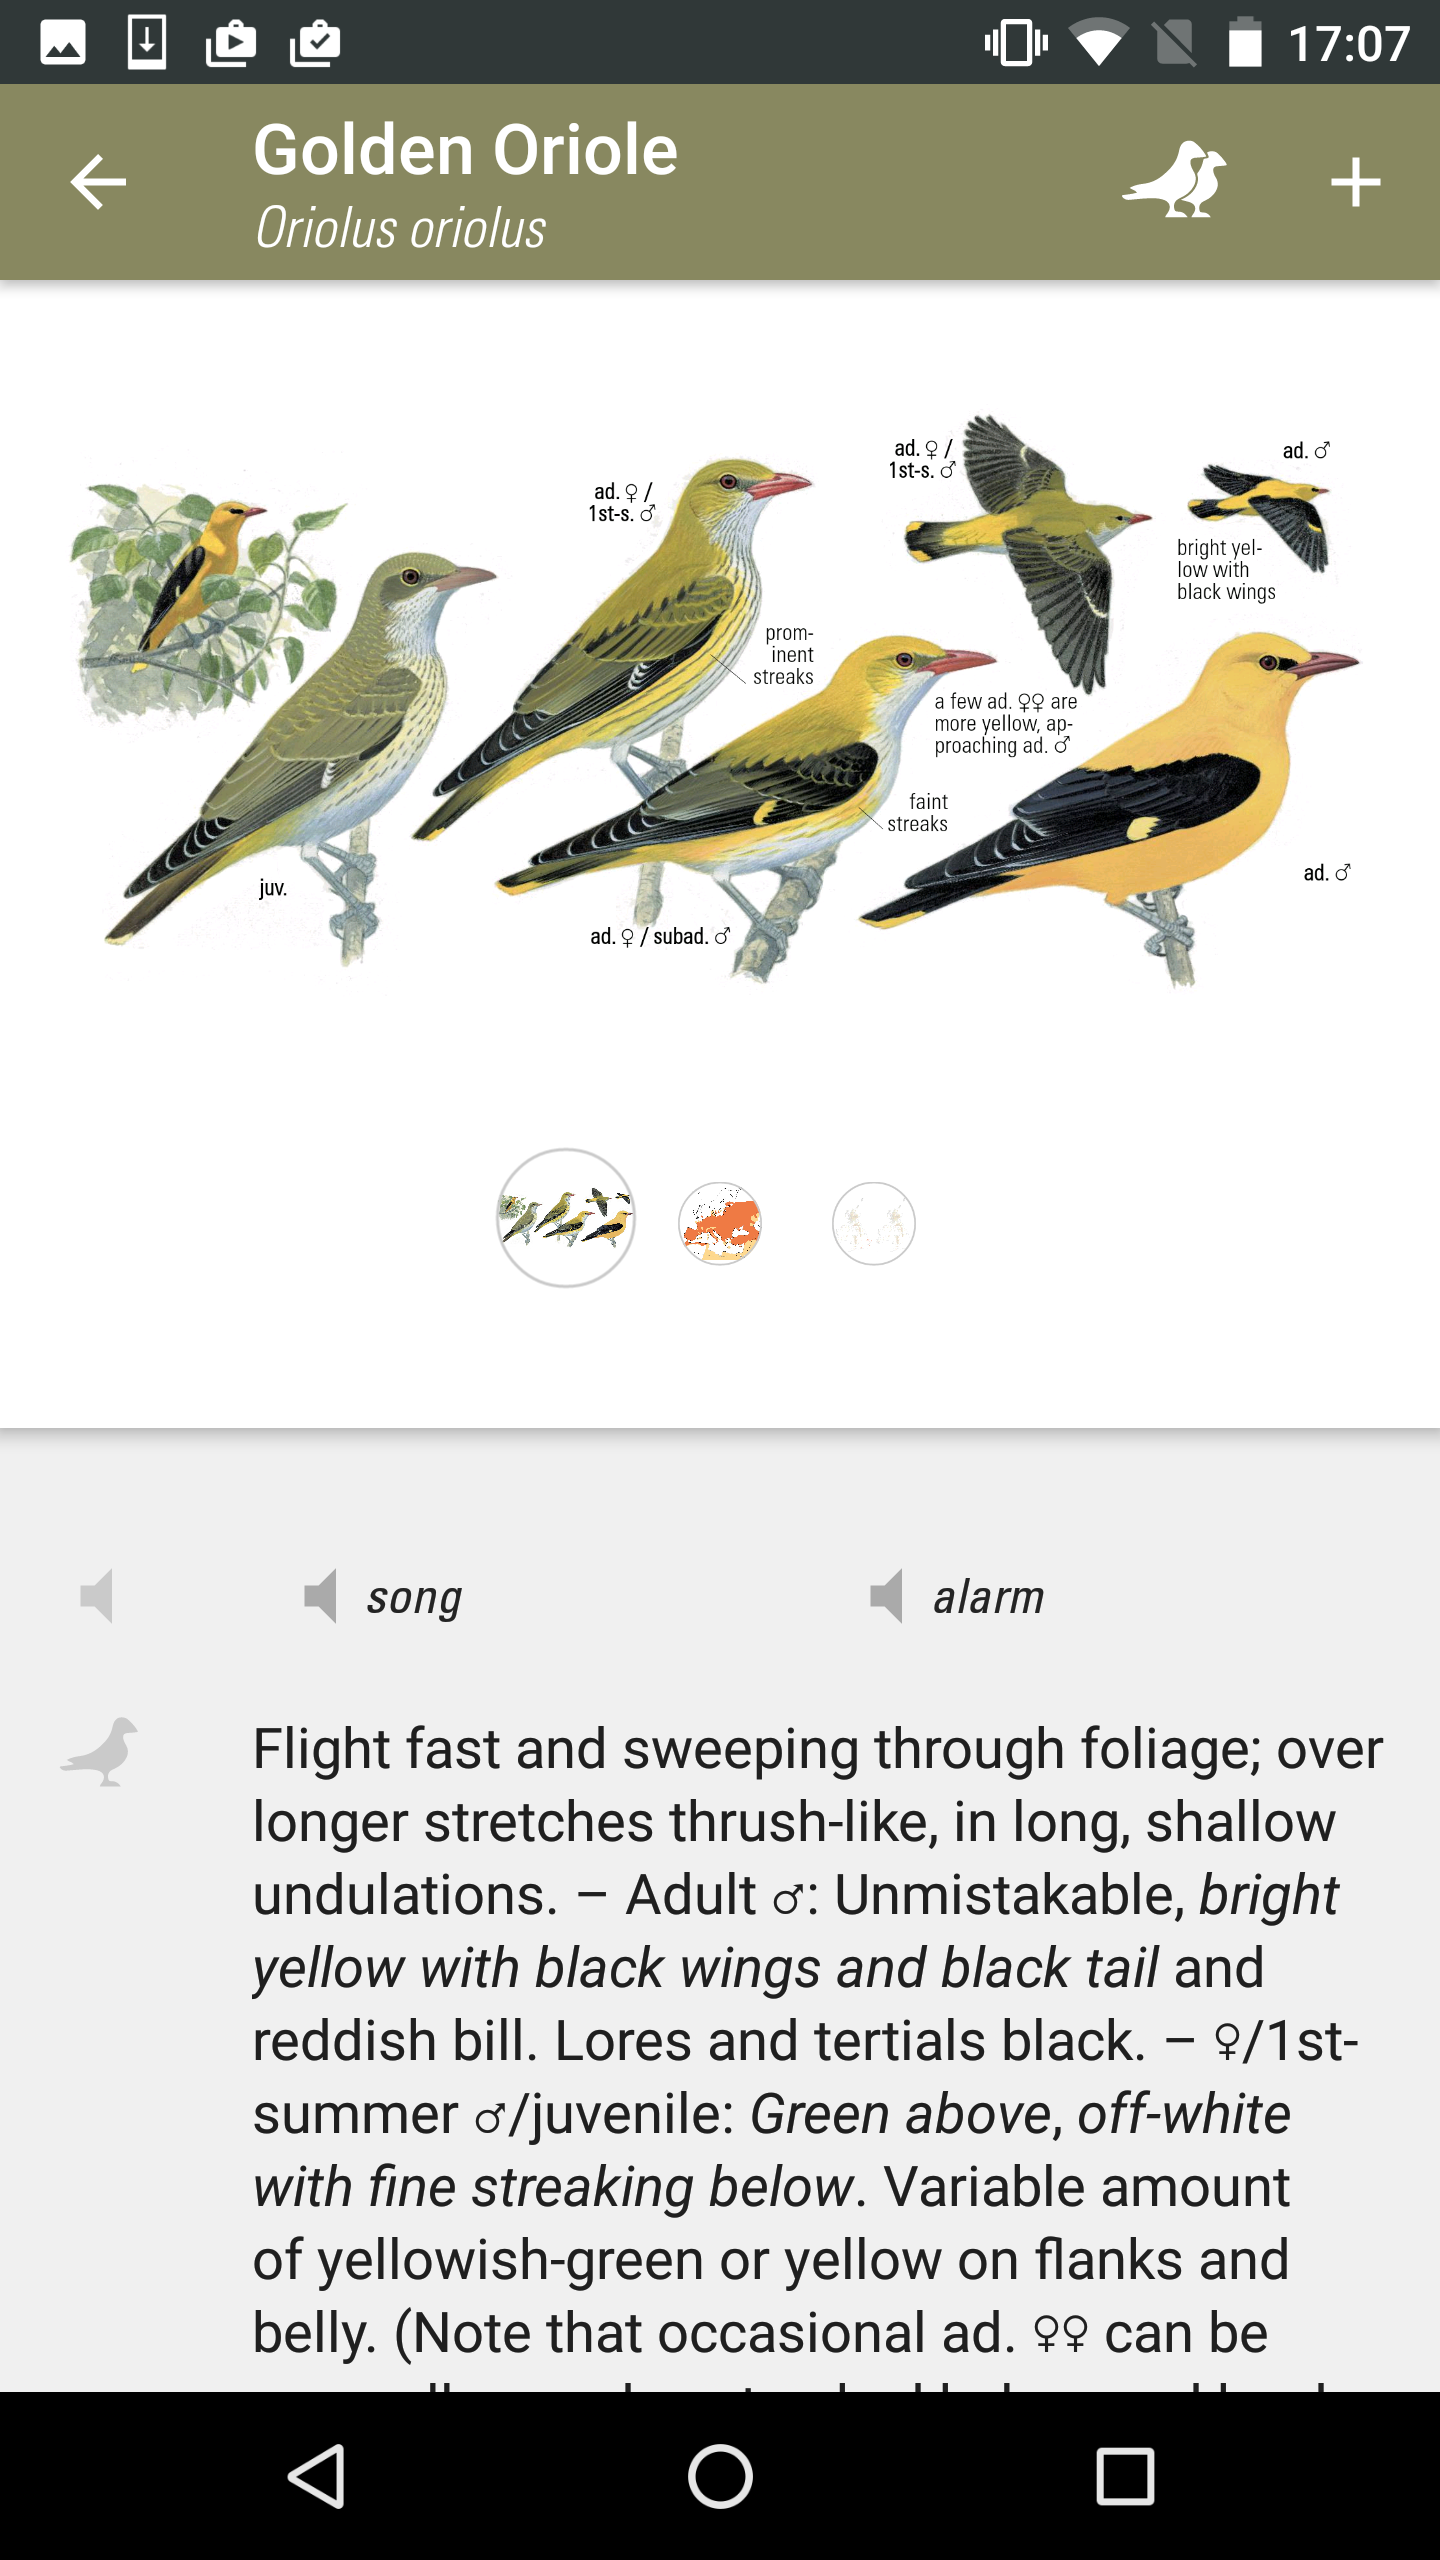 Collins Bird Guide on Android — NatureGuides